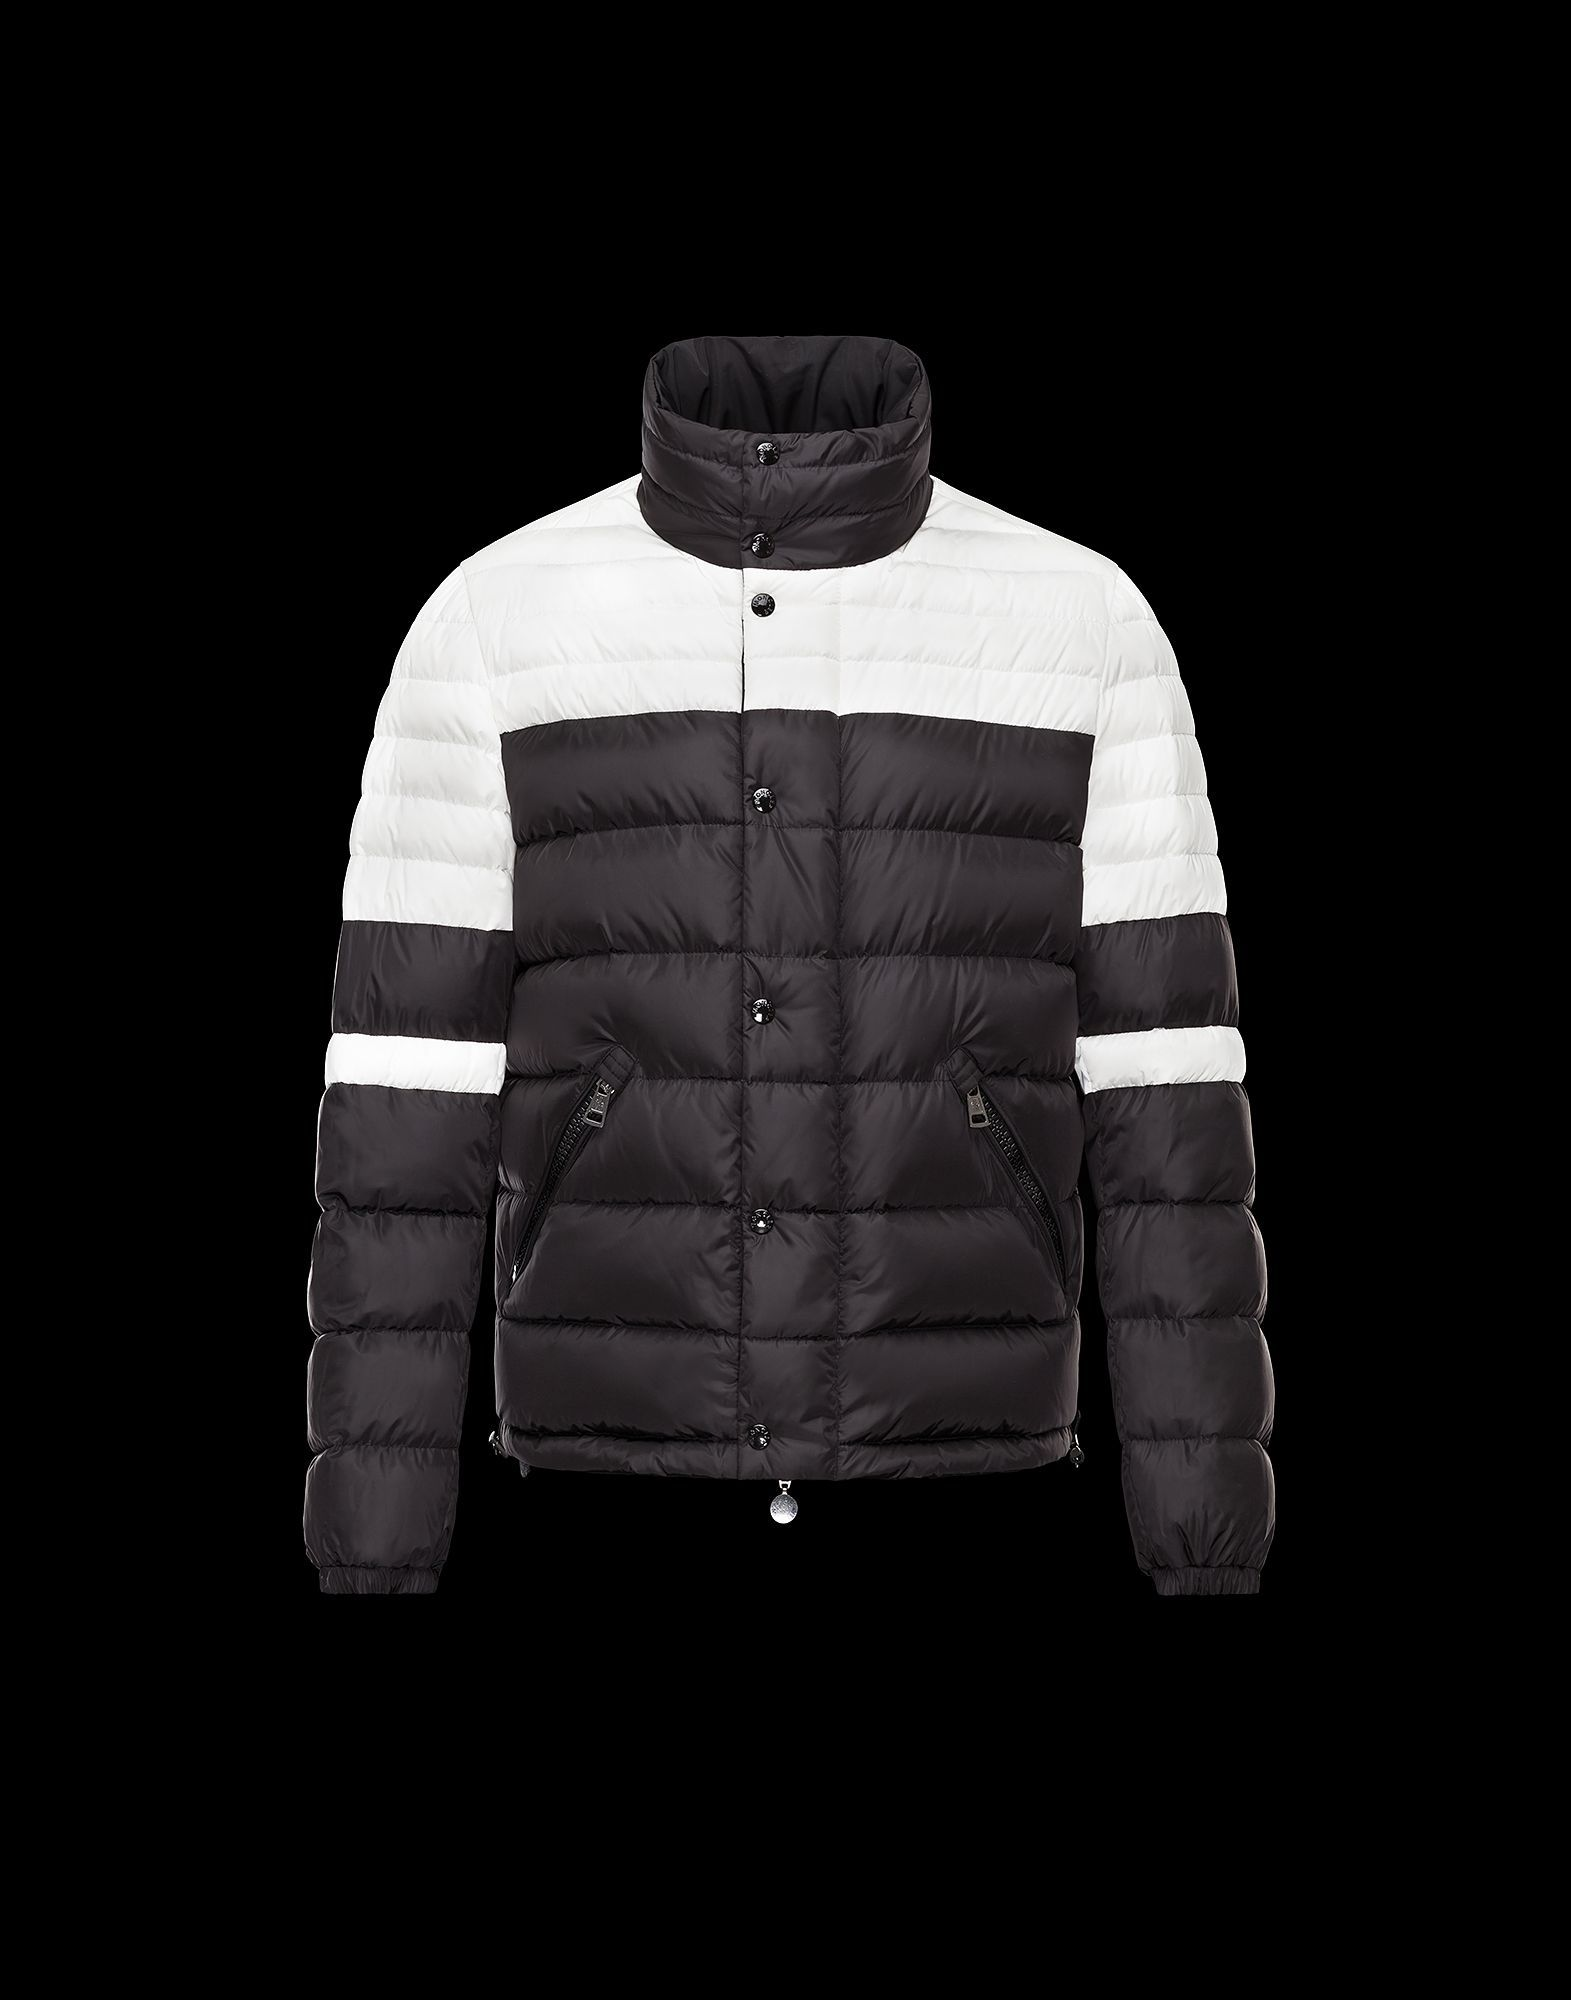 Moncler Jackets 28259564 Only 770.00 We have the biggest